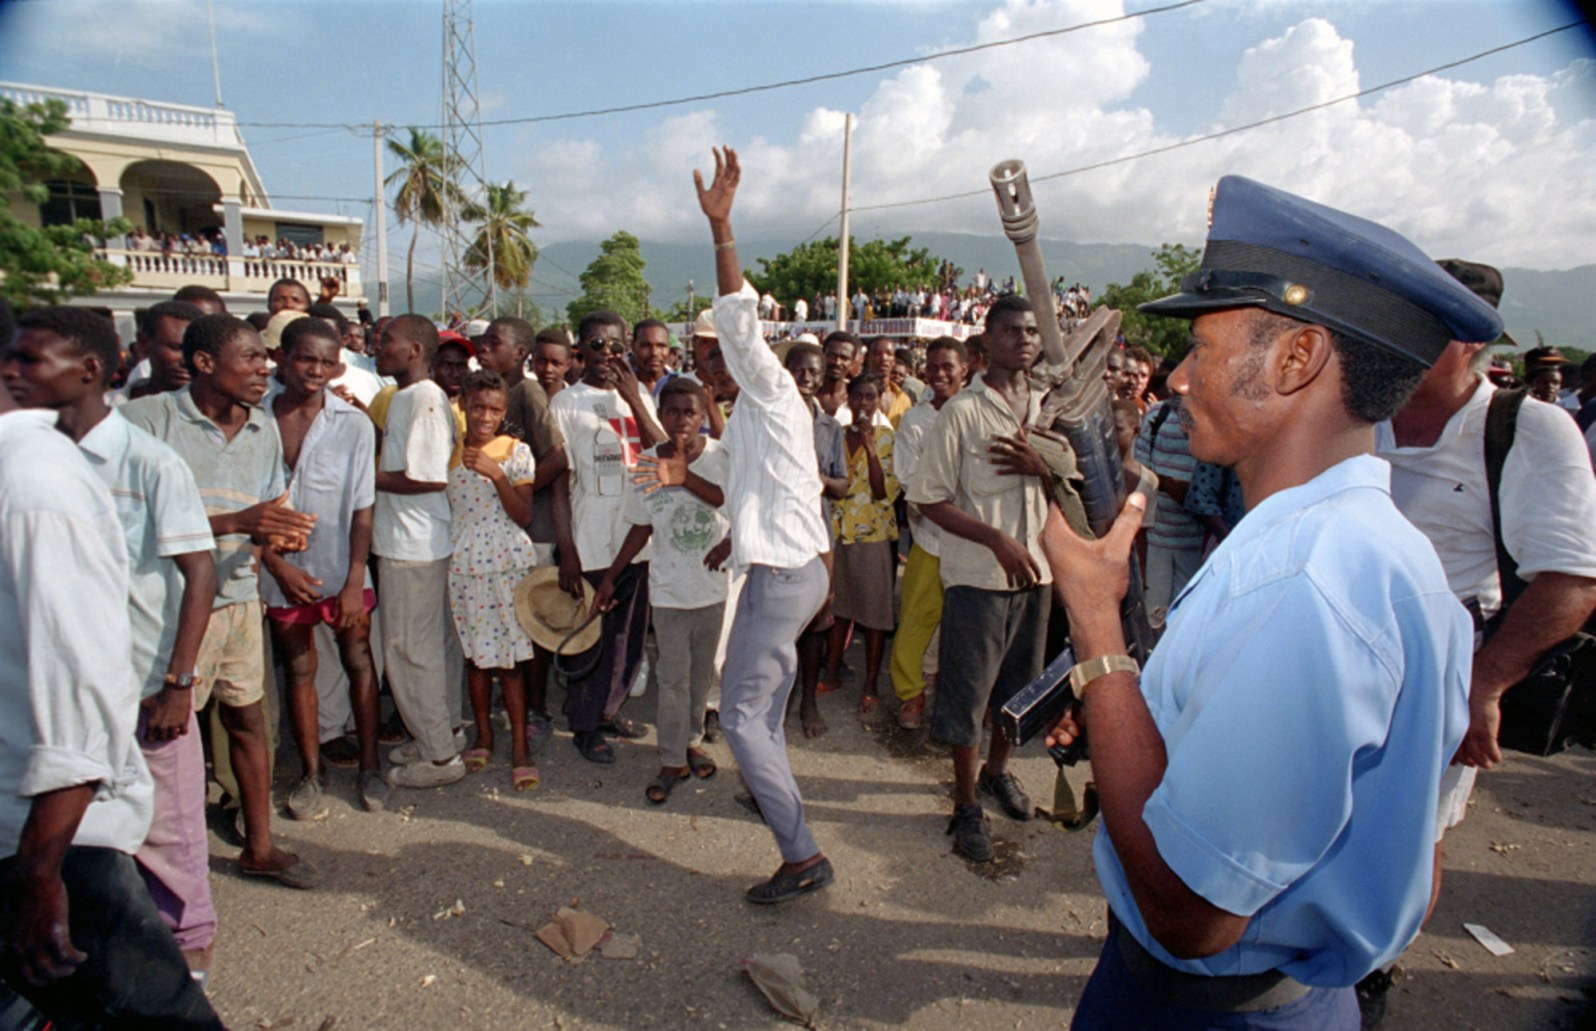 Protests in Haiti against the military regime that seized power in a coup in 1991. This photo was taken in 1994, as the US intervened to help reinstate the democratically elected president. (Credit Tim Chapman, Courtesy History Miami)